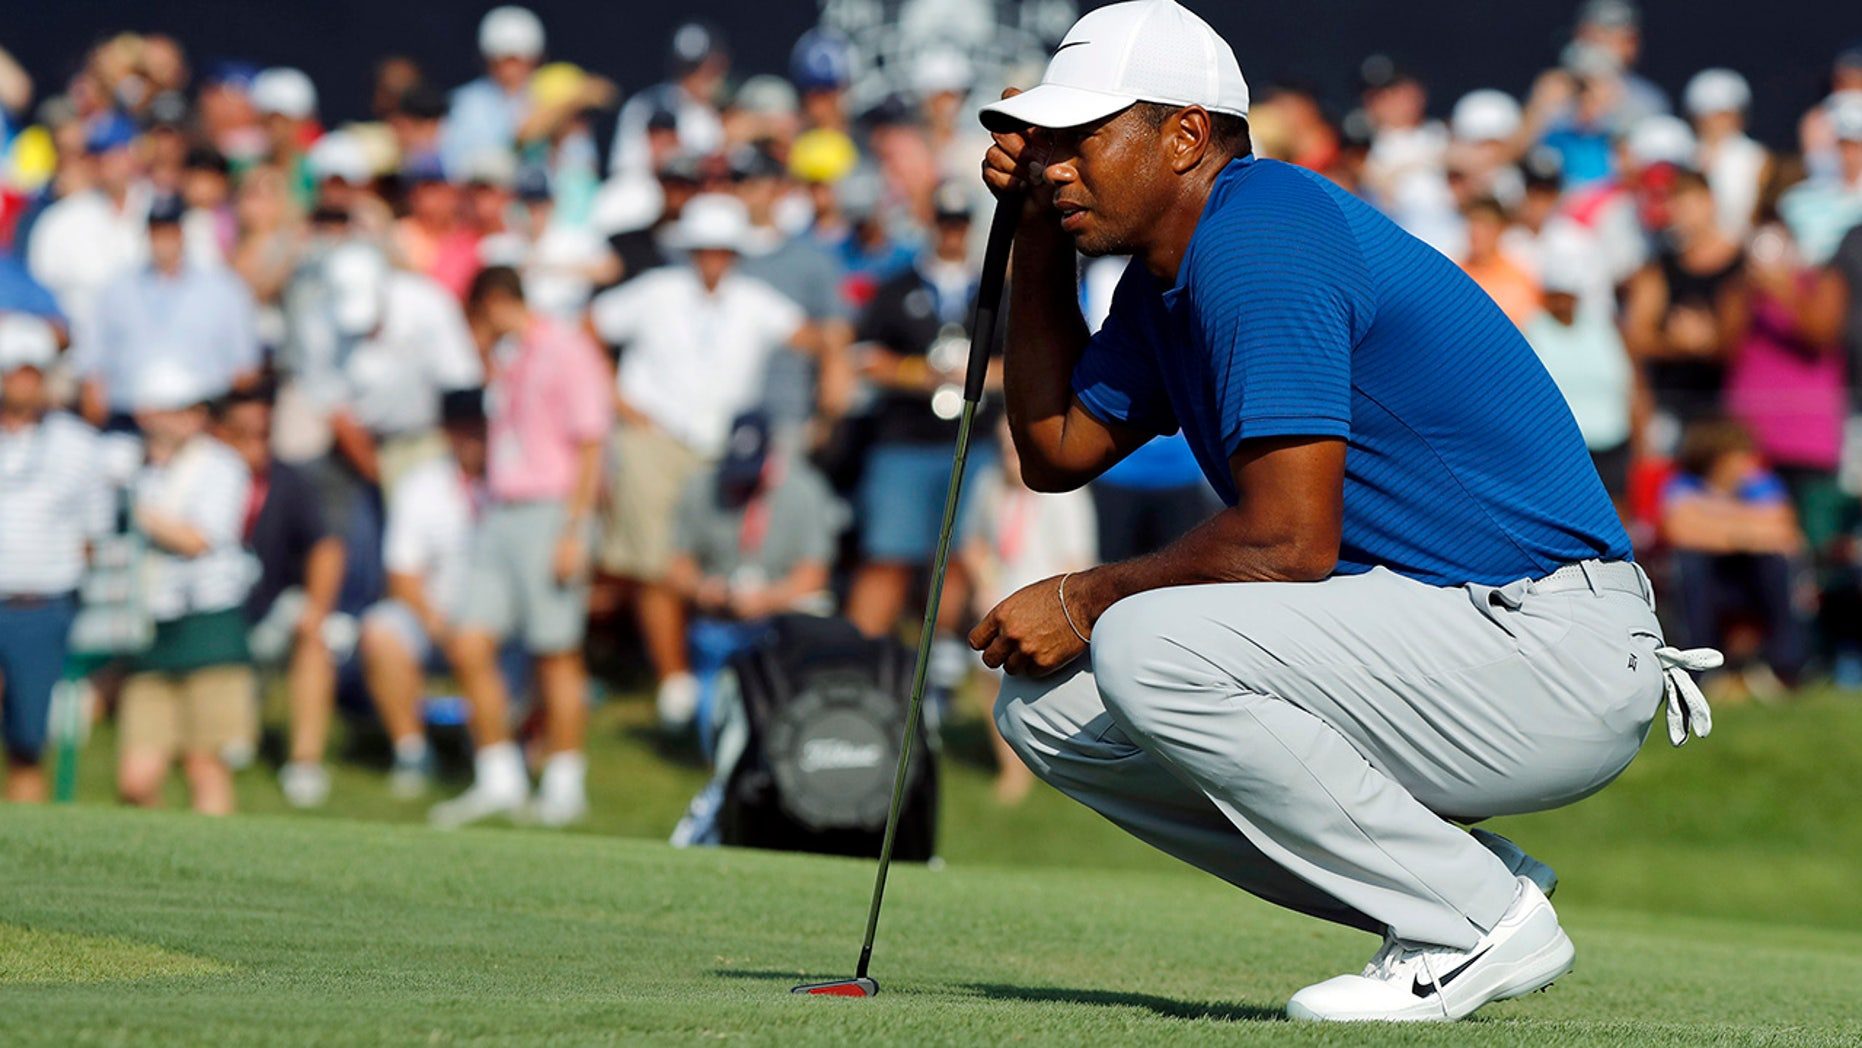 Tiger Woods looks at his putt on the 18th green during the third round of the PGA Championship golf tournament at Bellerive Country Club, St. Luois, Aug. 11, 2018.